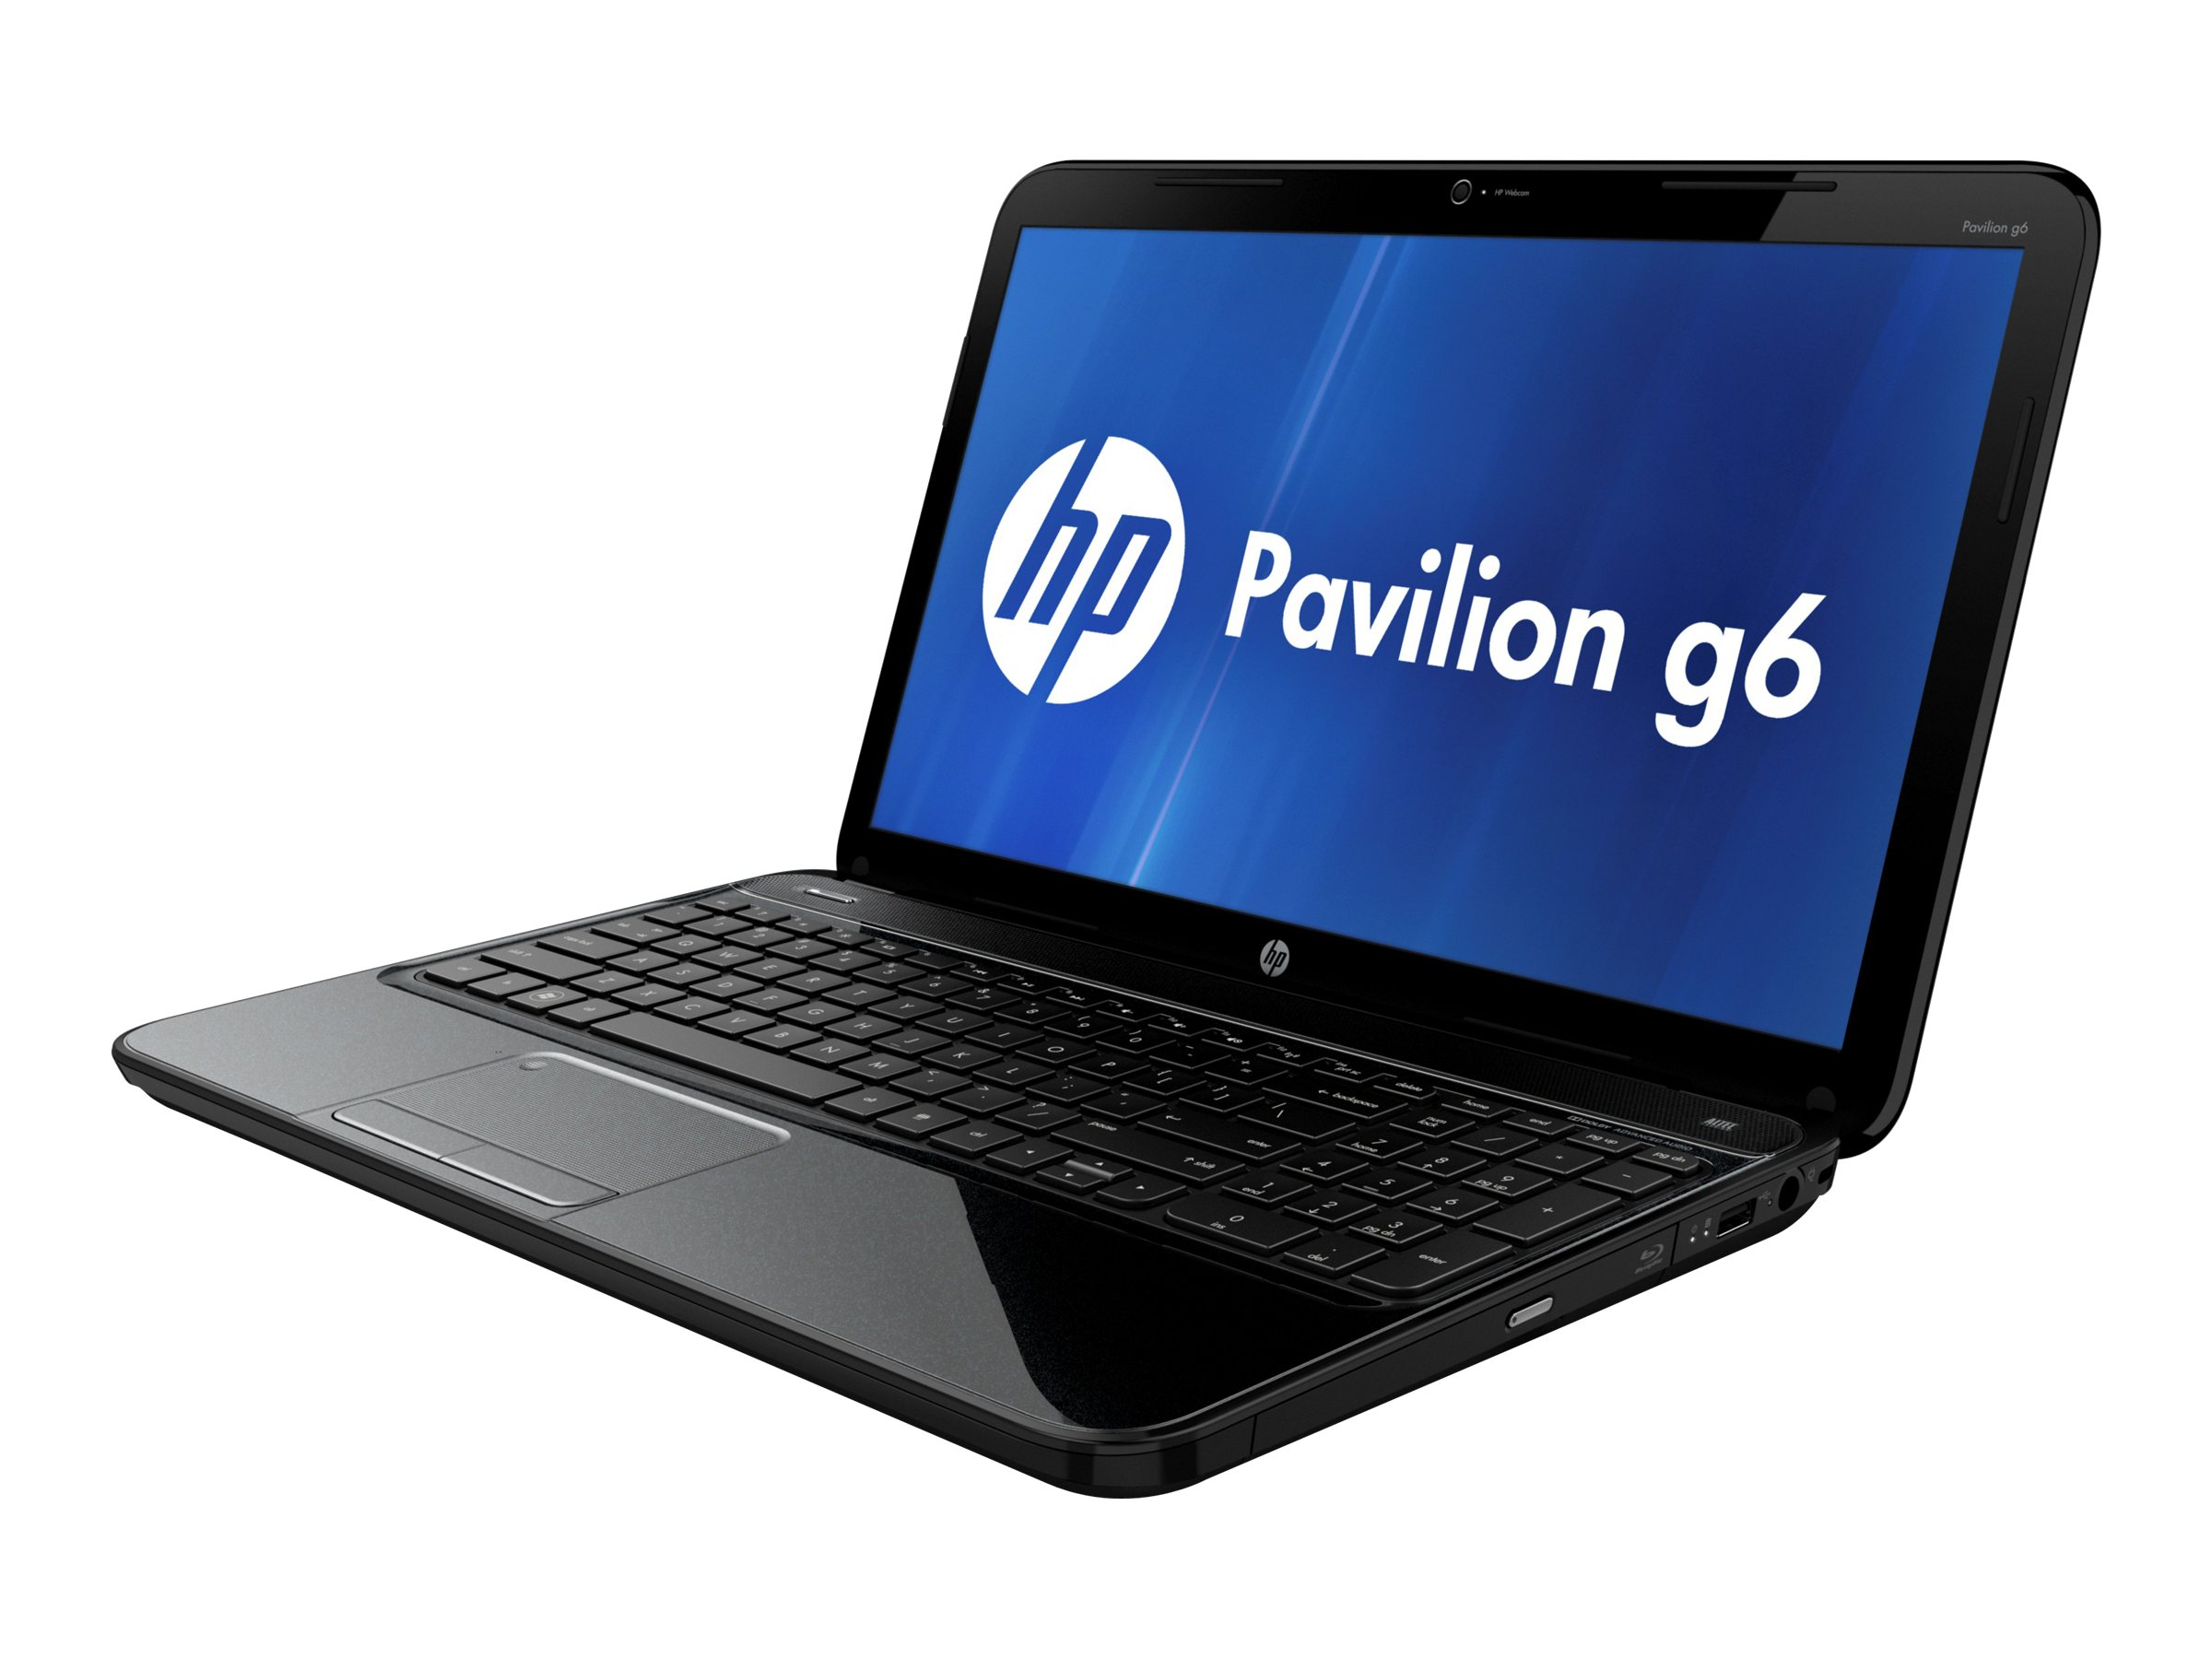 HP Pavilion G6-2129nr : 2.5GHz Core i5 15.6in display, B5A37UA#ABA, 14459841, Notebooks